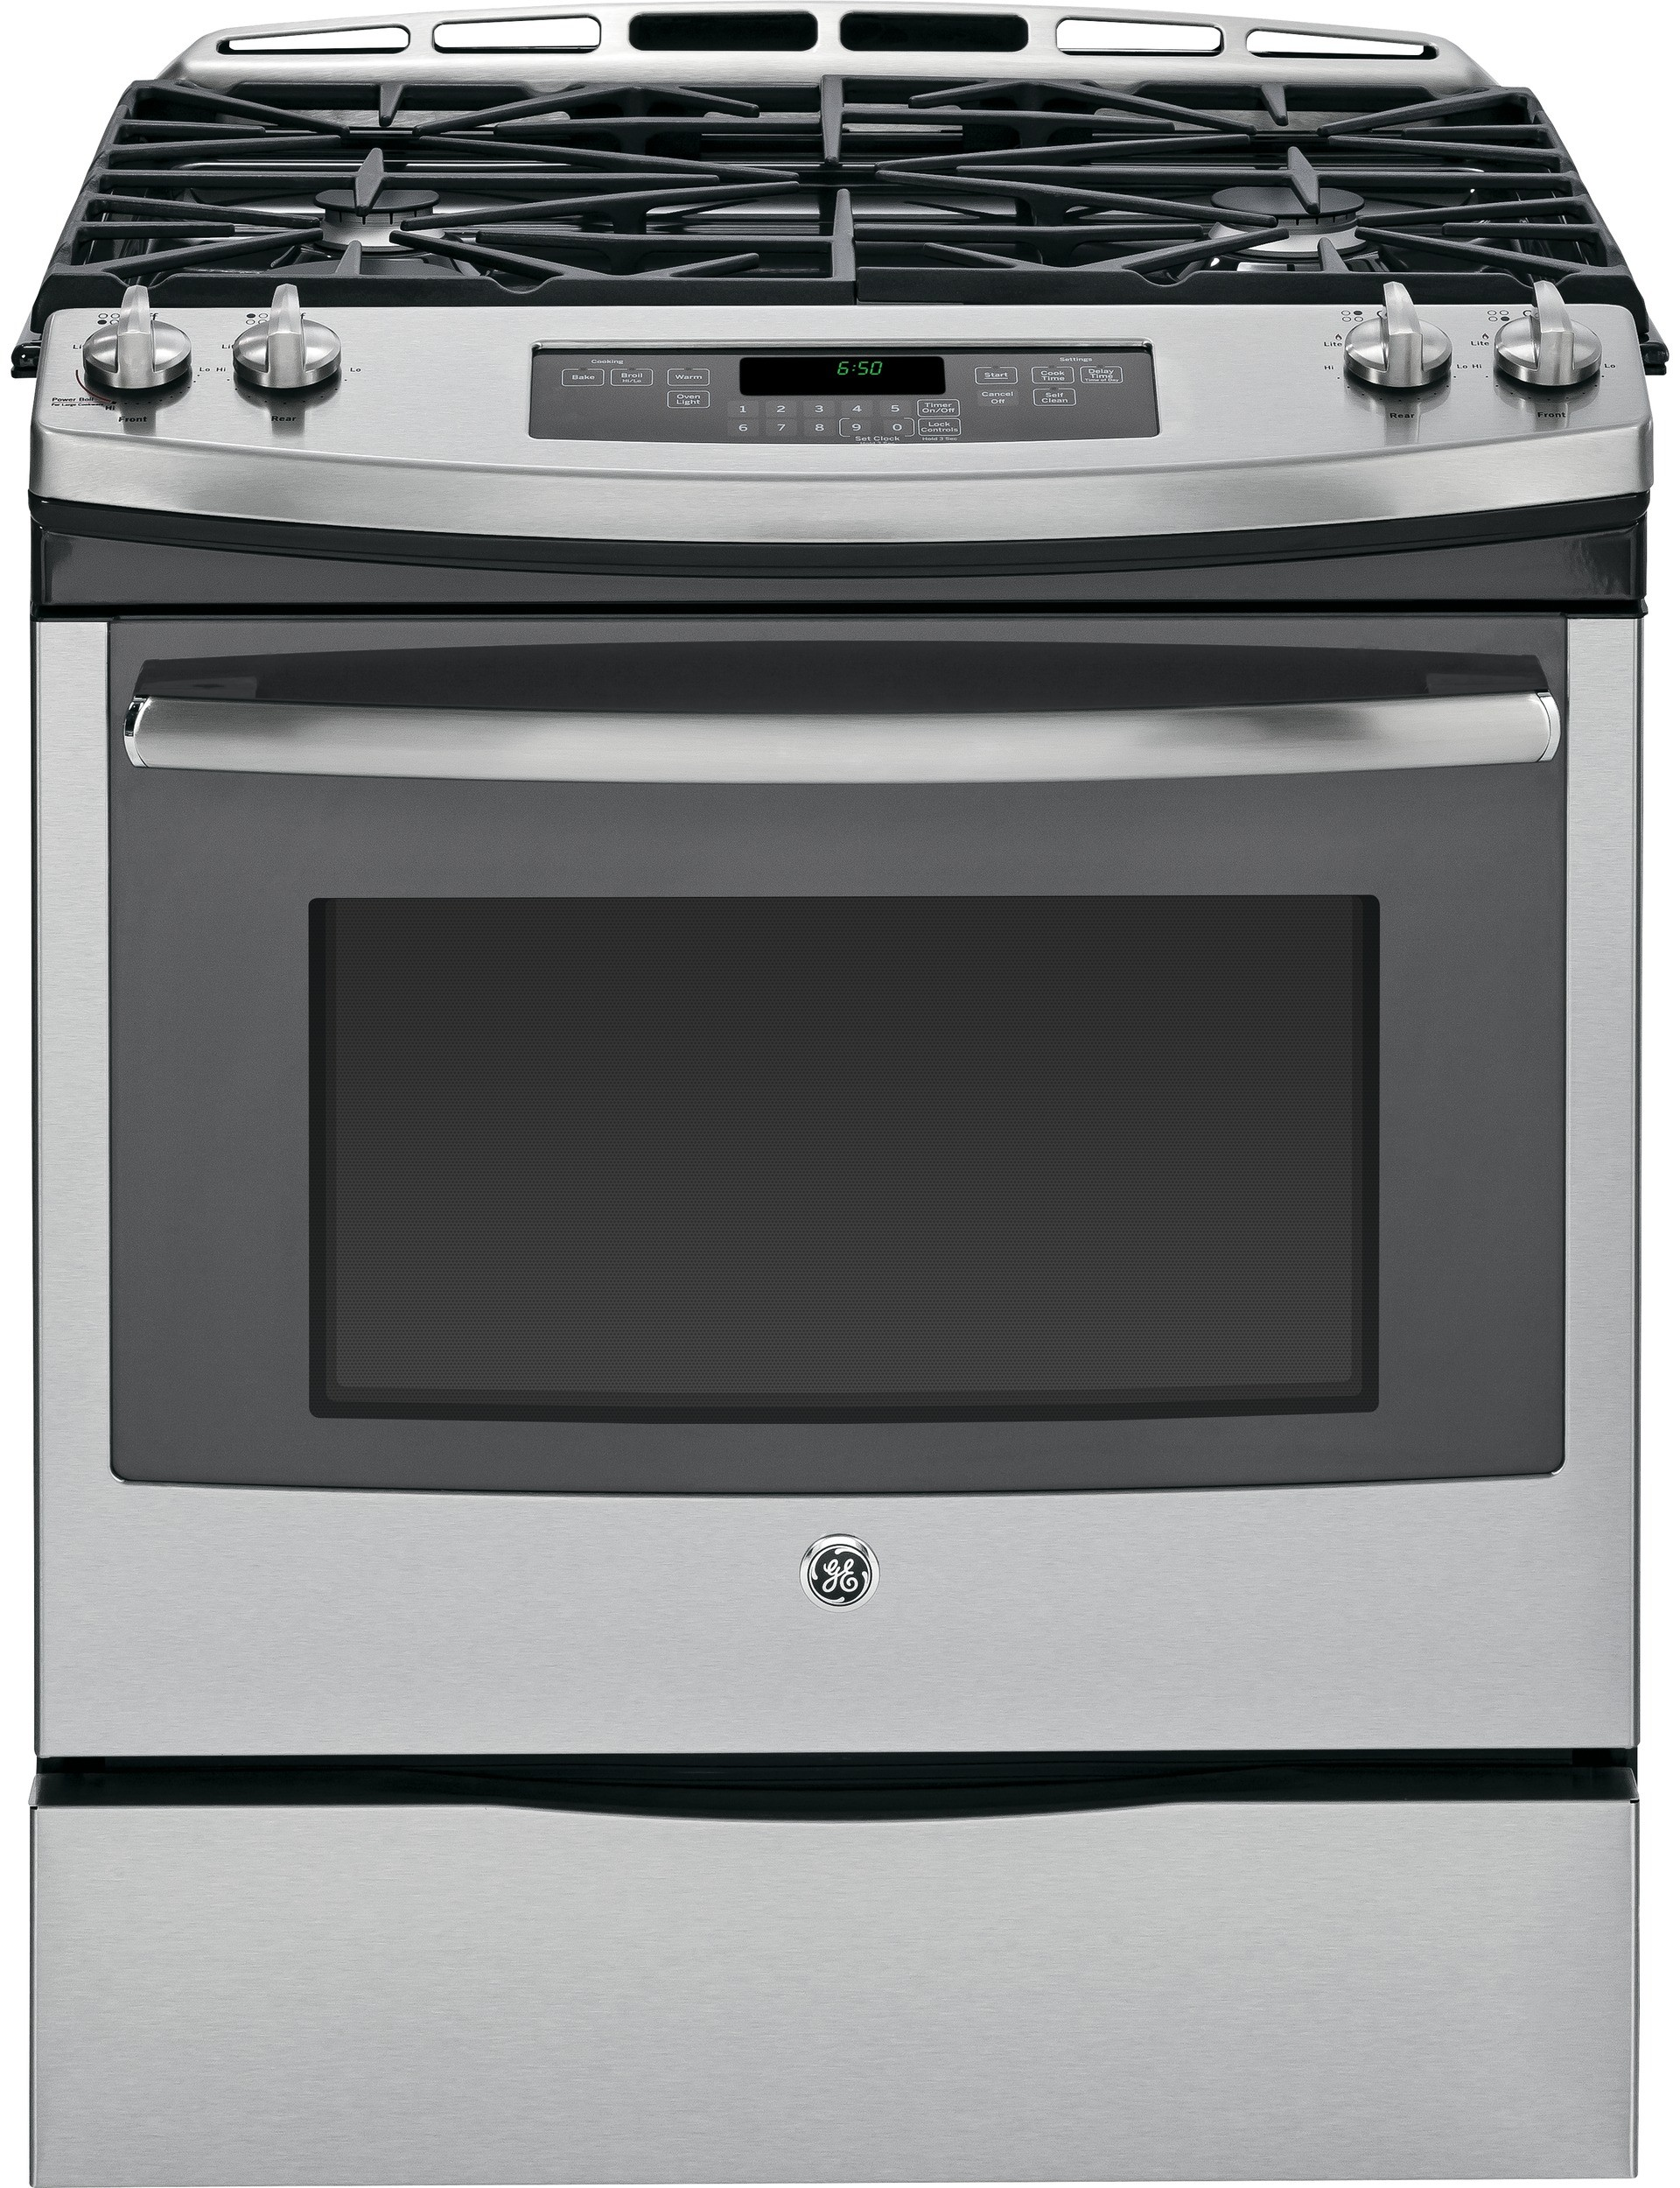 ge jgs650sefss 30 inch slide in gas range with 5 6 cu ft capacity oven 4 sealed burners with. Black Bedroom Furniture Sets. Home Design Ideas